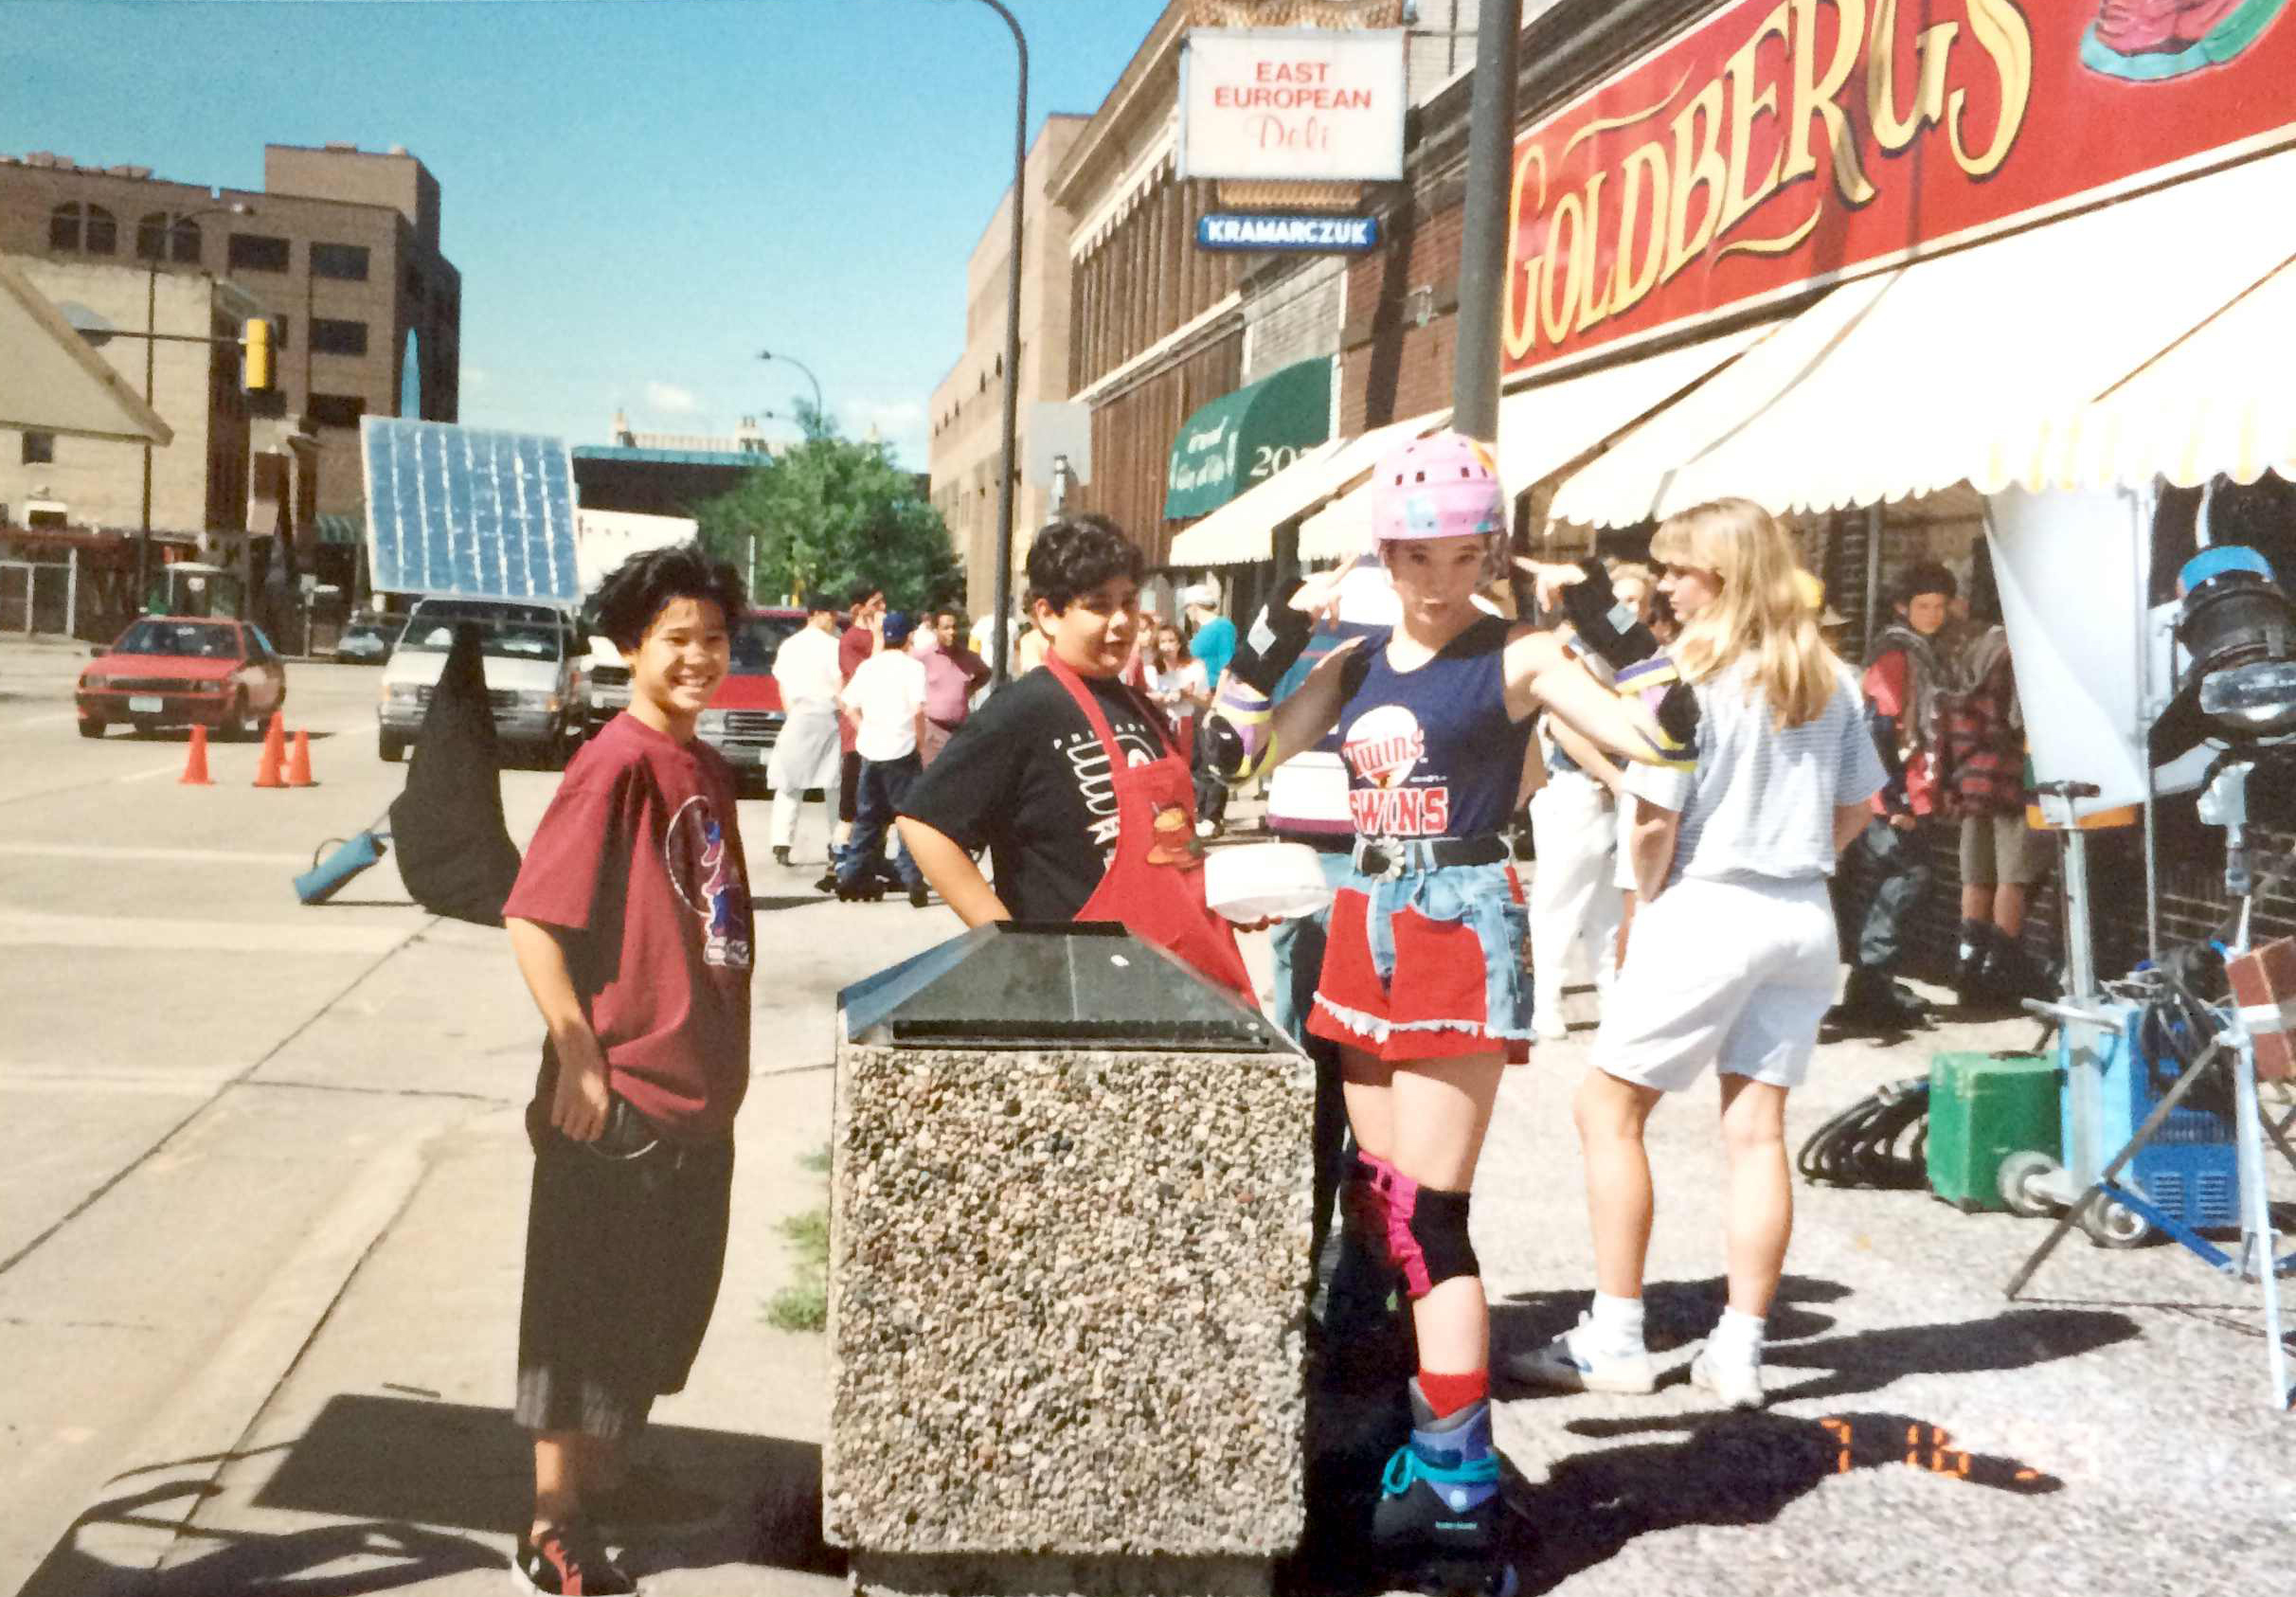 Justin Wong (Ken Wu), Shaun Weiss (Greg Goldberg) and Marguerite Moreau (Connie Moreau) on the D2: The Mighty Ducks set outside the fictional Goldberg's Deli.